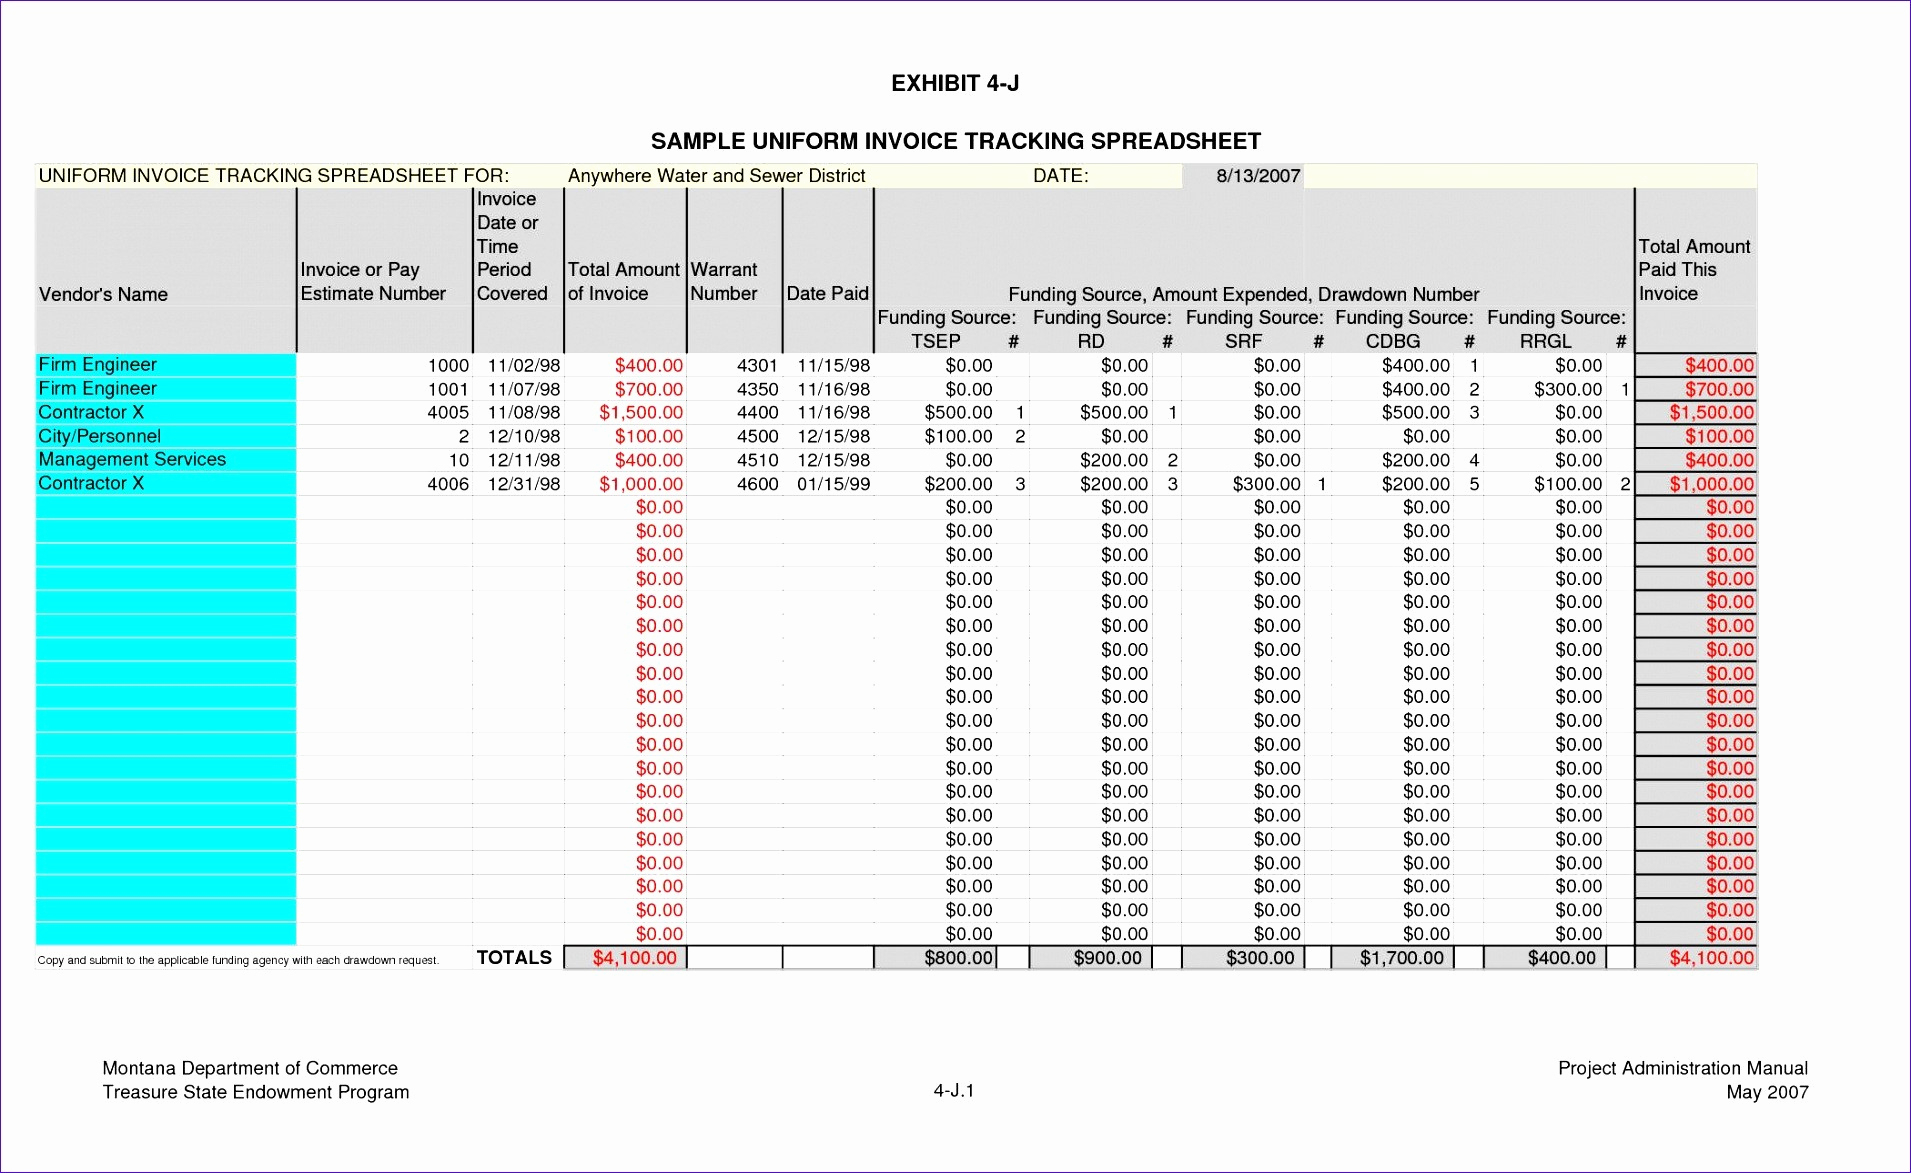 Construction Cost Tracking Spreadsheet New Realtor Expense Tracking With Realtor Expense Tracking Spreadsheet